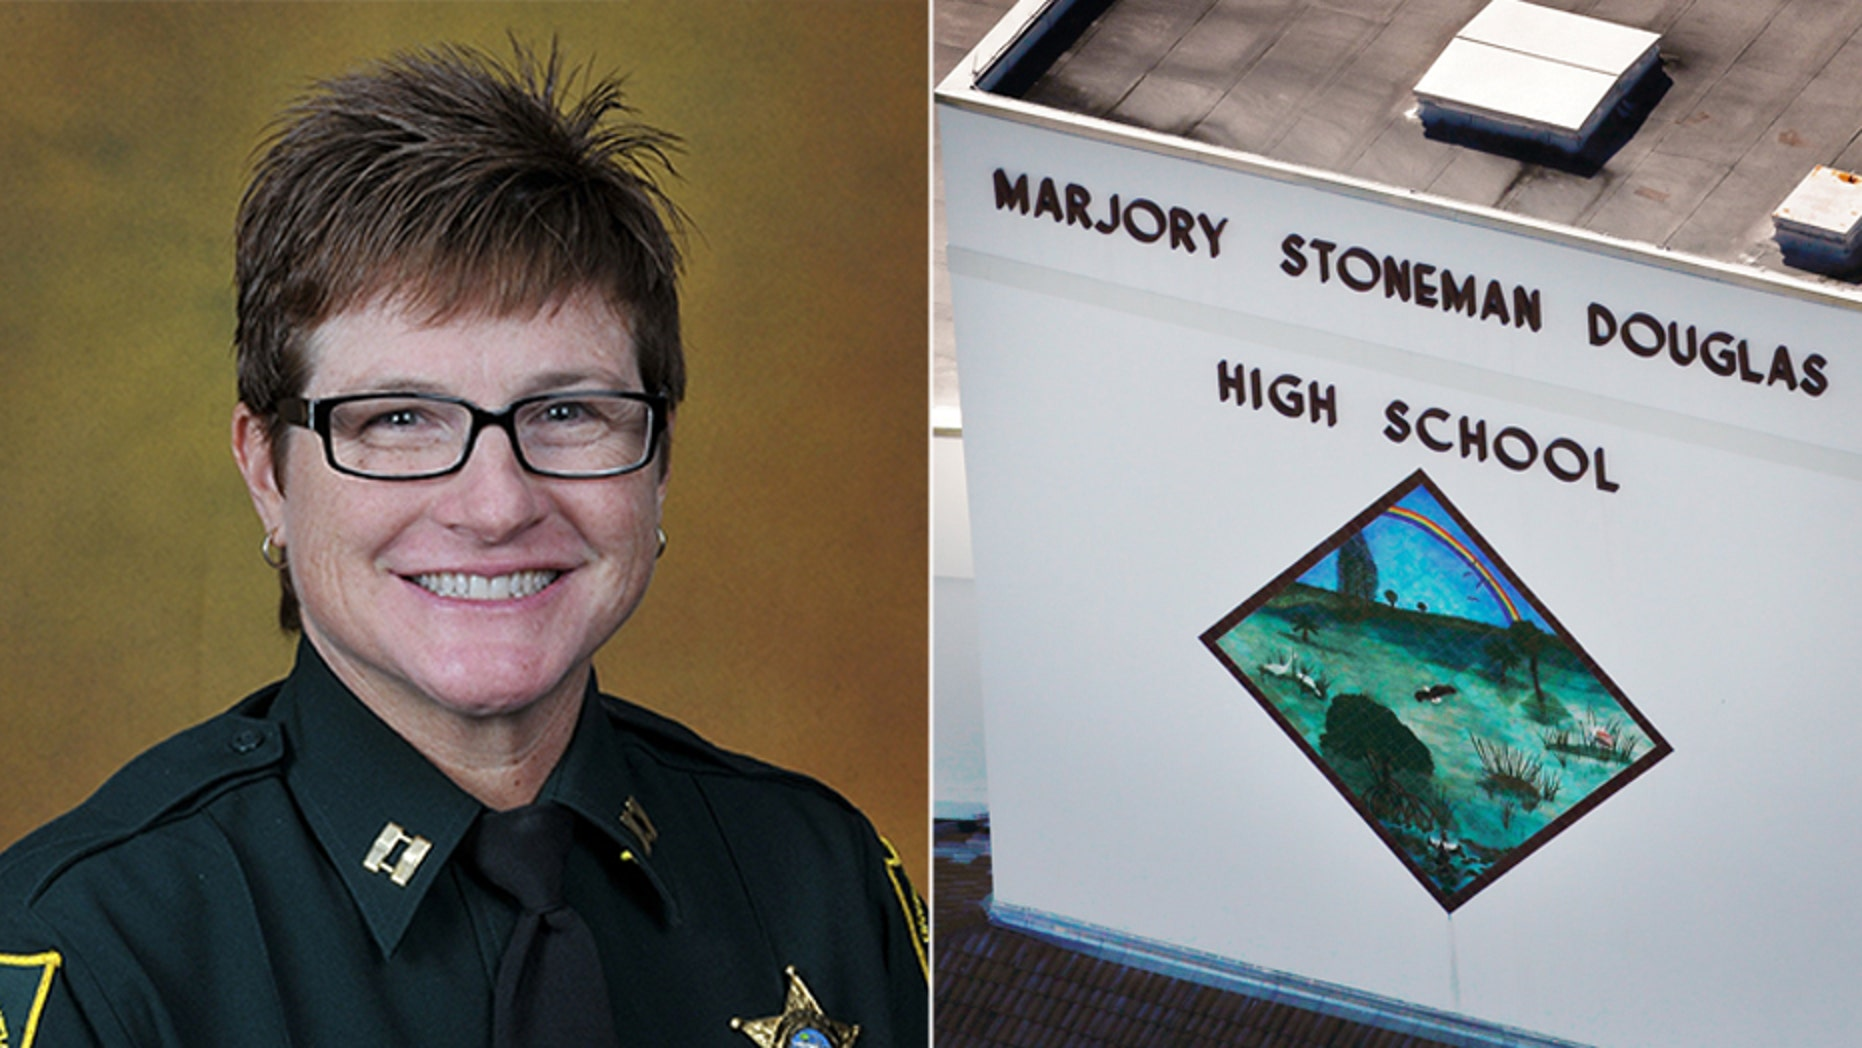 Broward County Sheriff's Captain Jan Jordan will be replaced with a higher-ranking officer as part of an analysis of the contract the city of Parkland has with the sheriff's office.